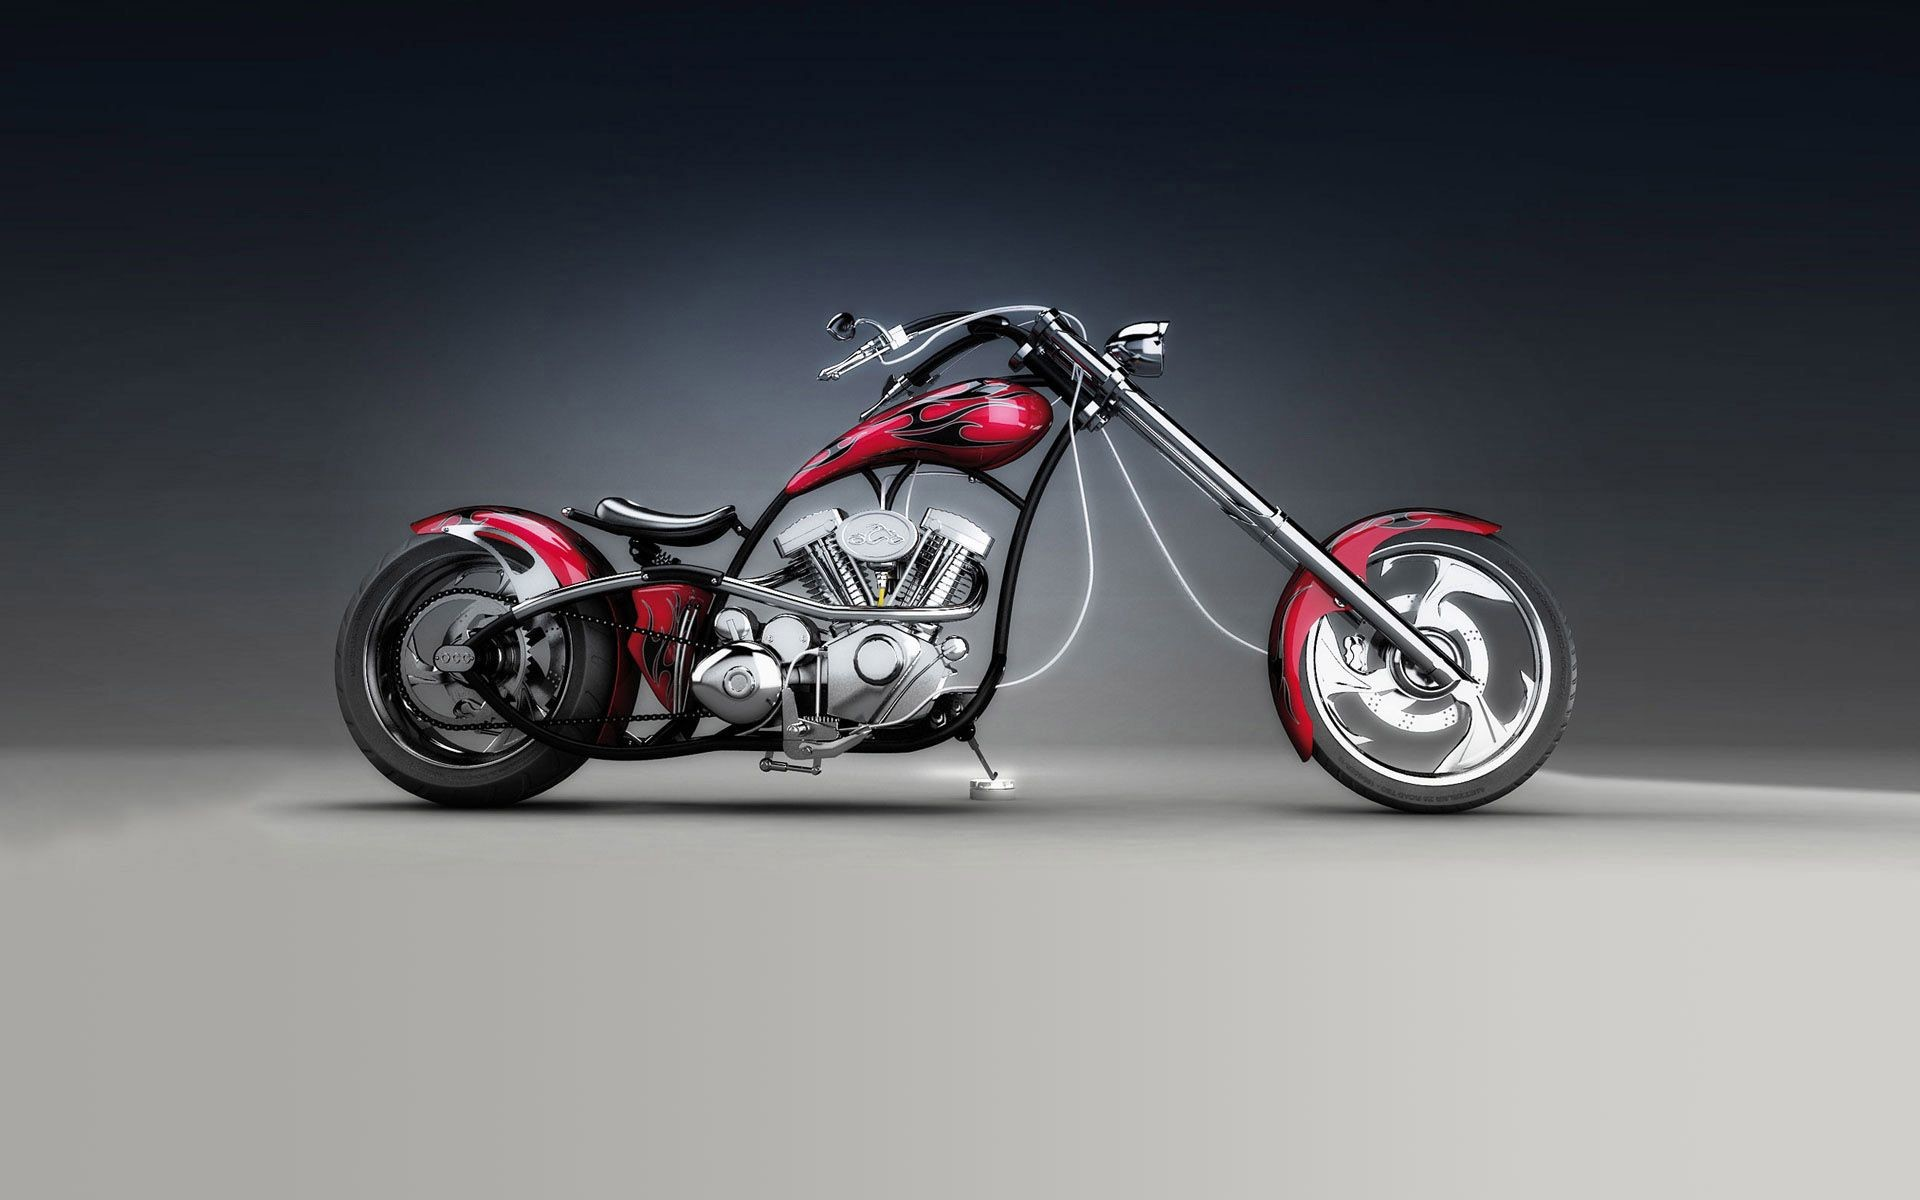 Res: 1920x1200, Bobber iPhone Wallpaper American Choppers Desktop Wallpapers Of Bobber  iPhone Wallpaper